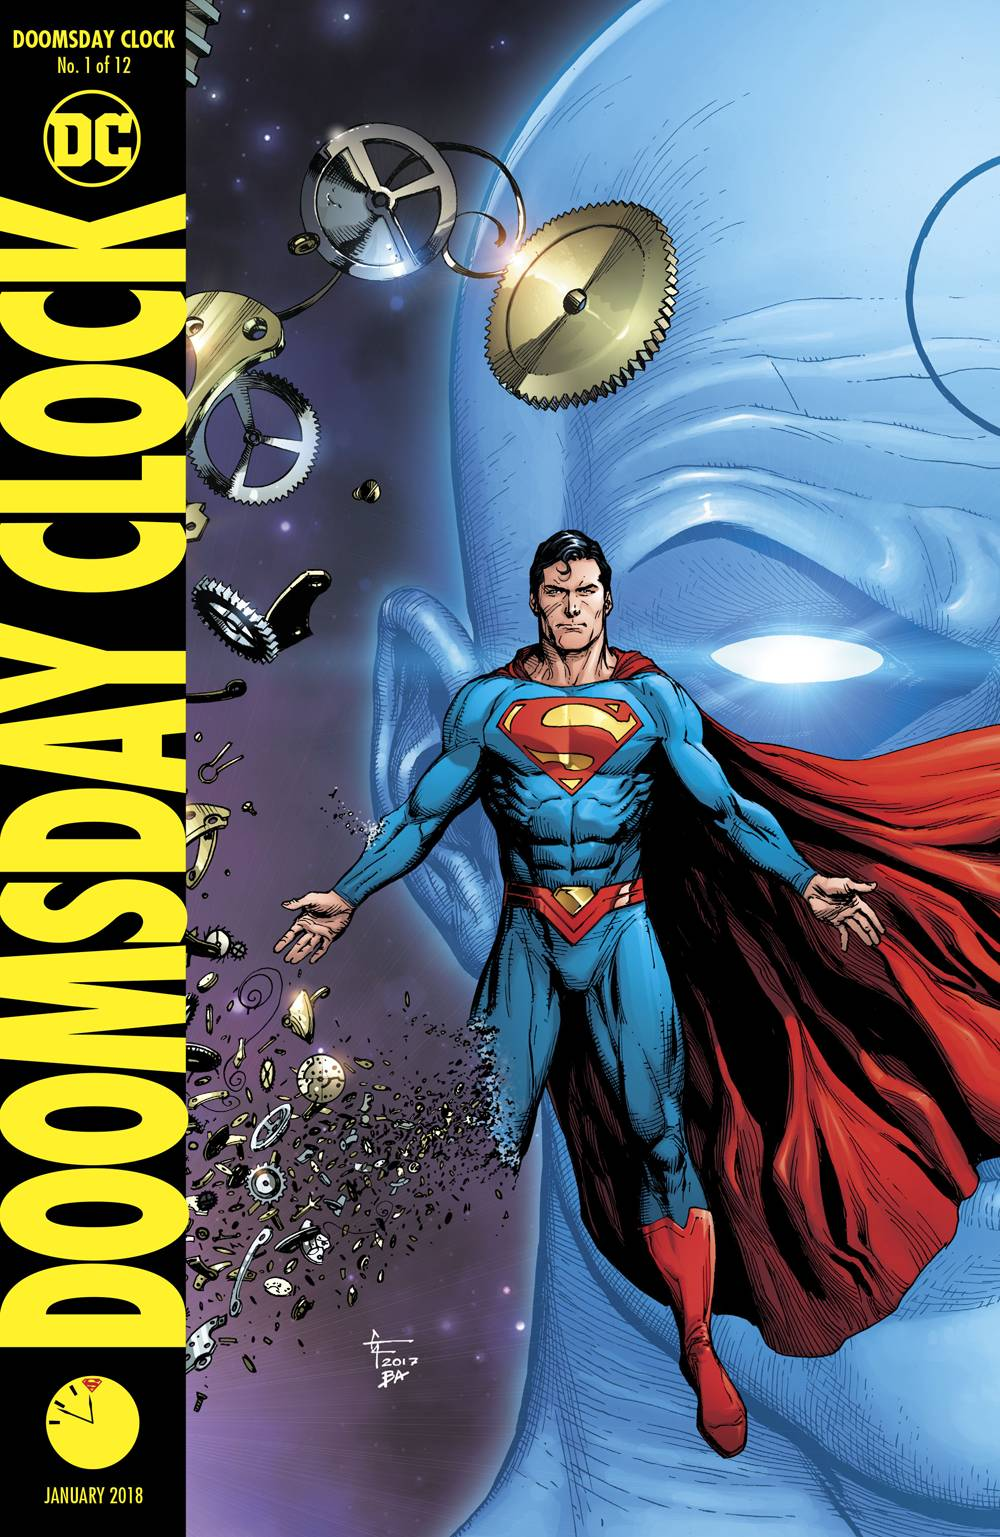 DOOMSDAY CLOCK 1 of 12 FRANK VAR ED.jpg